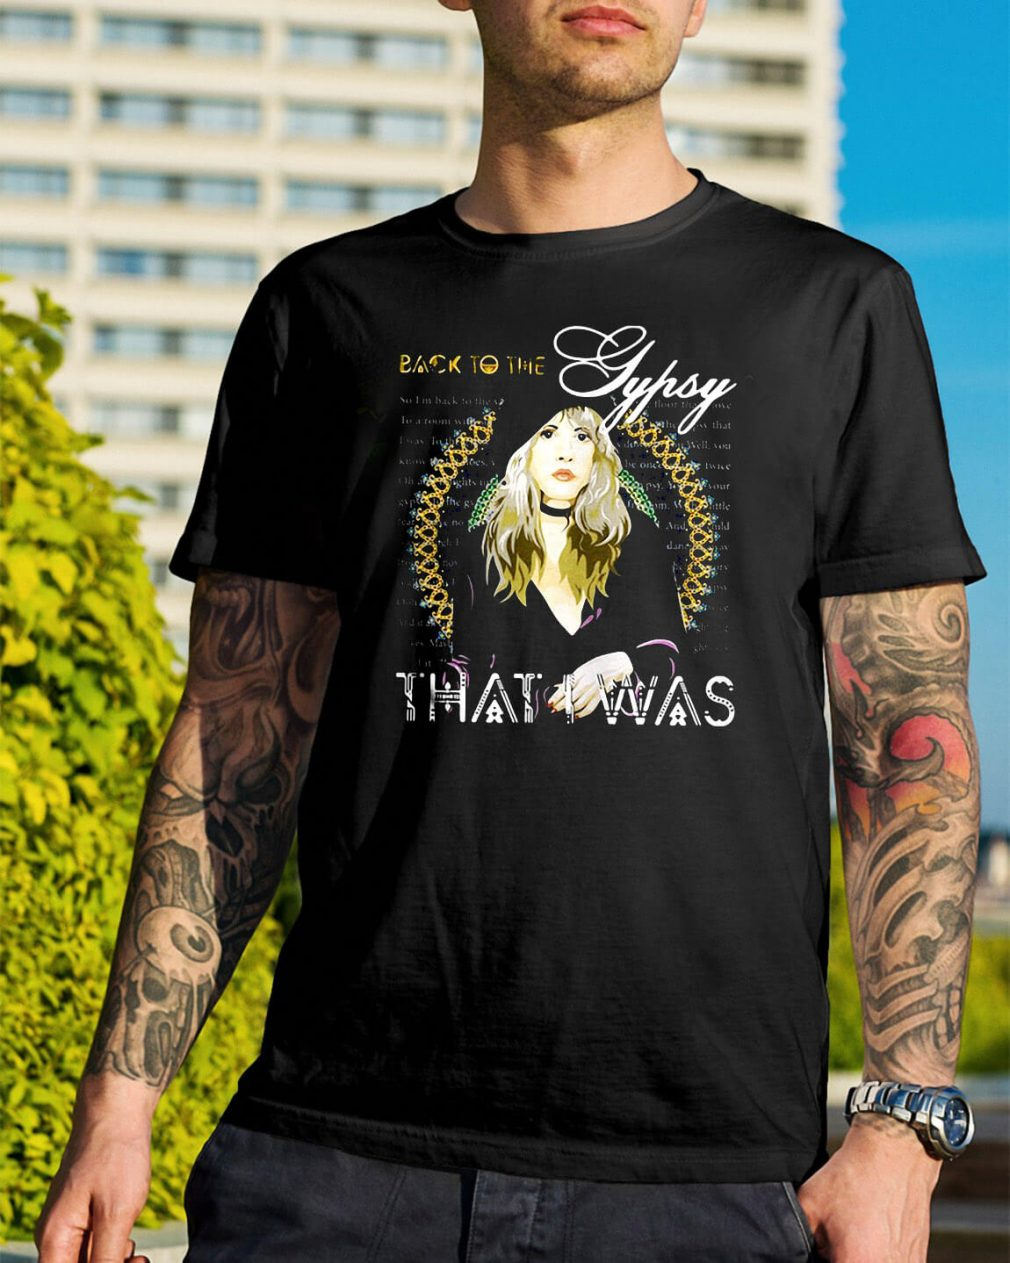 Stevie Nicks Gypsy back to the Gypsy shirt